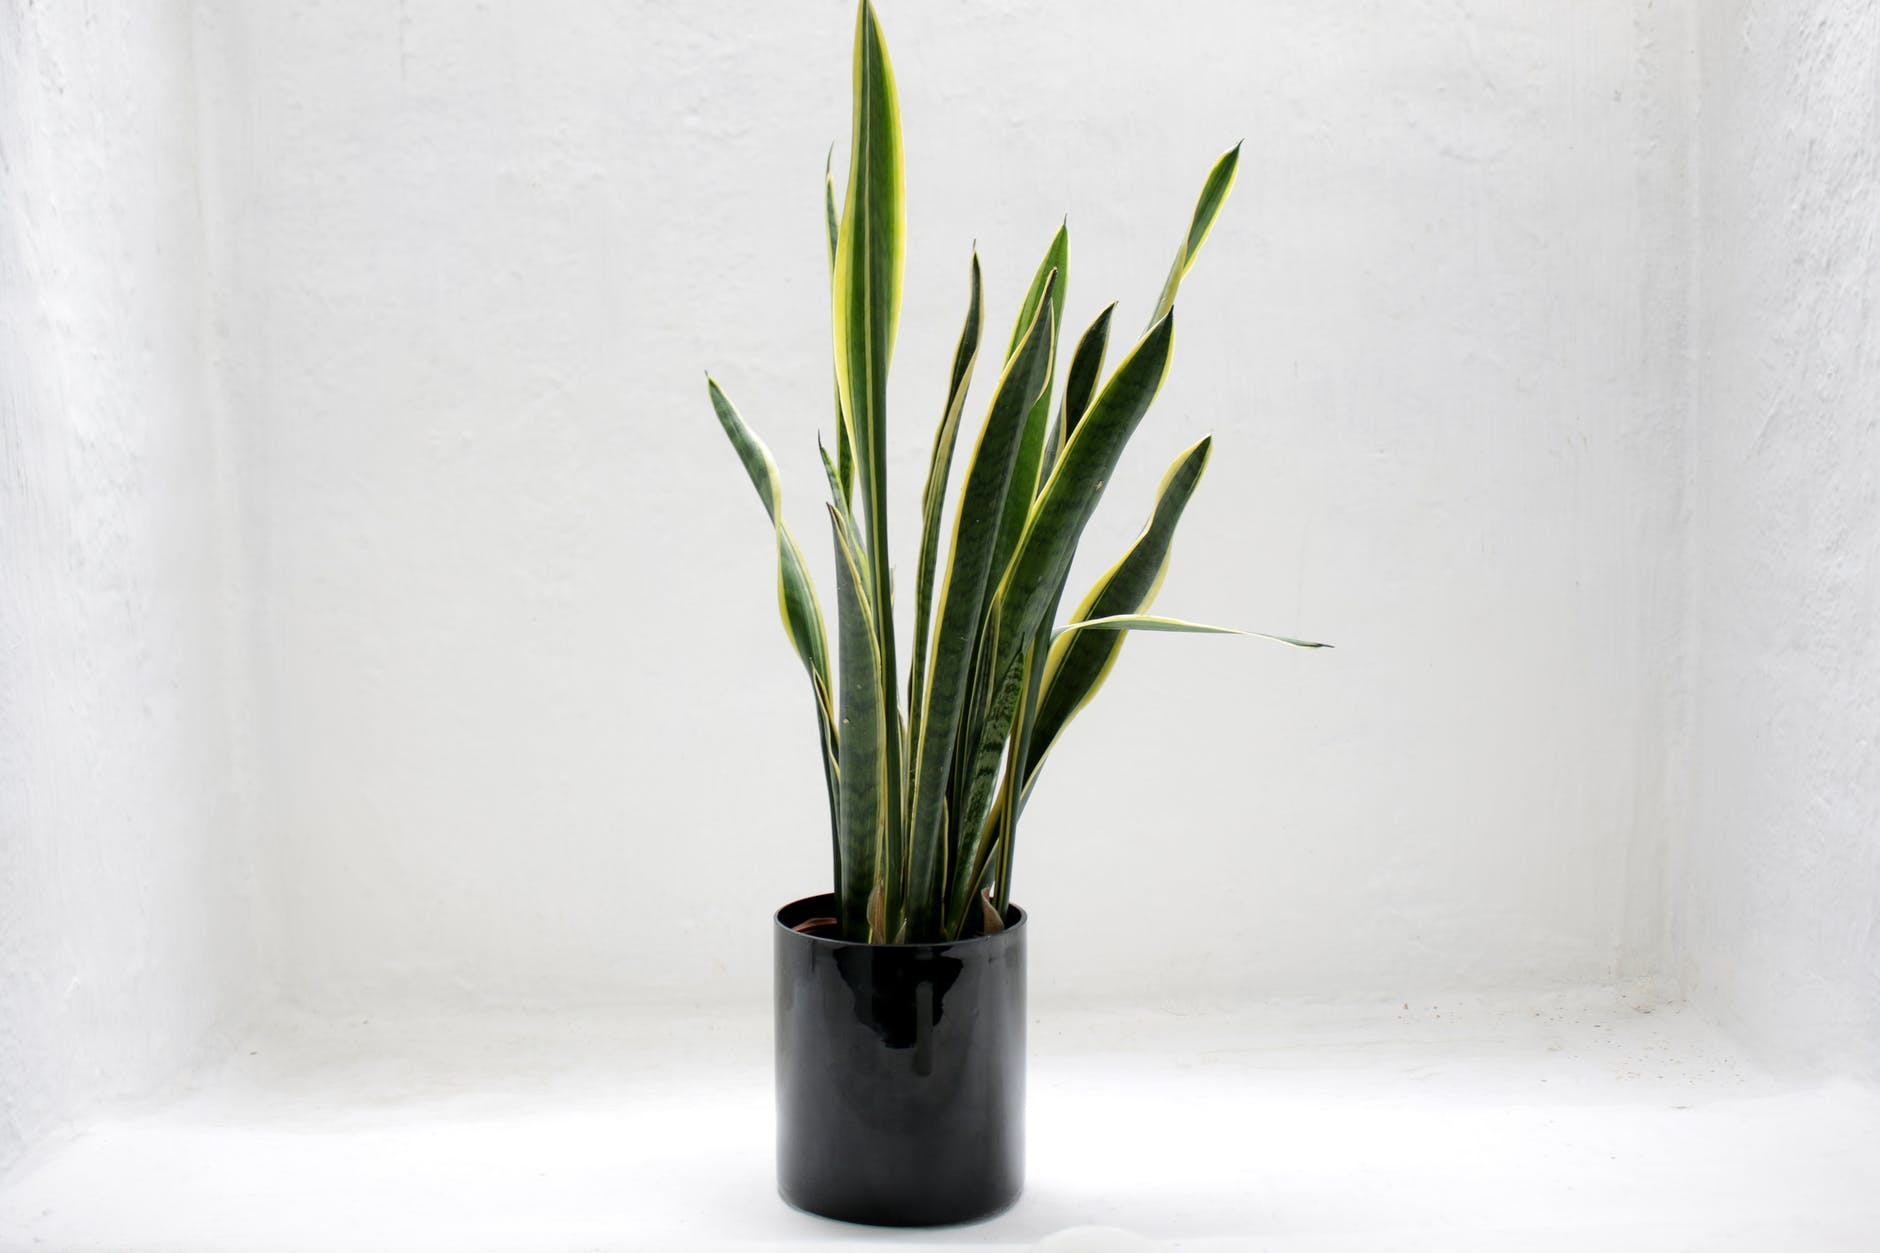 best low light indoor plants - snake grass